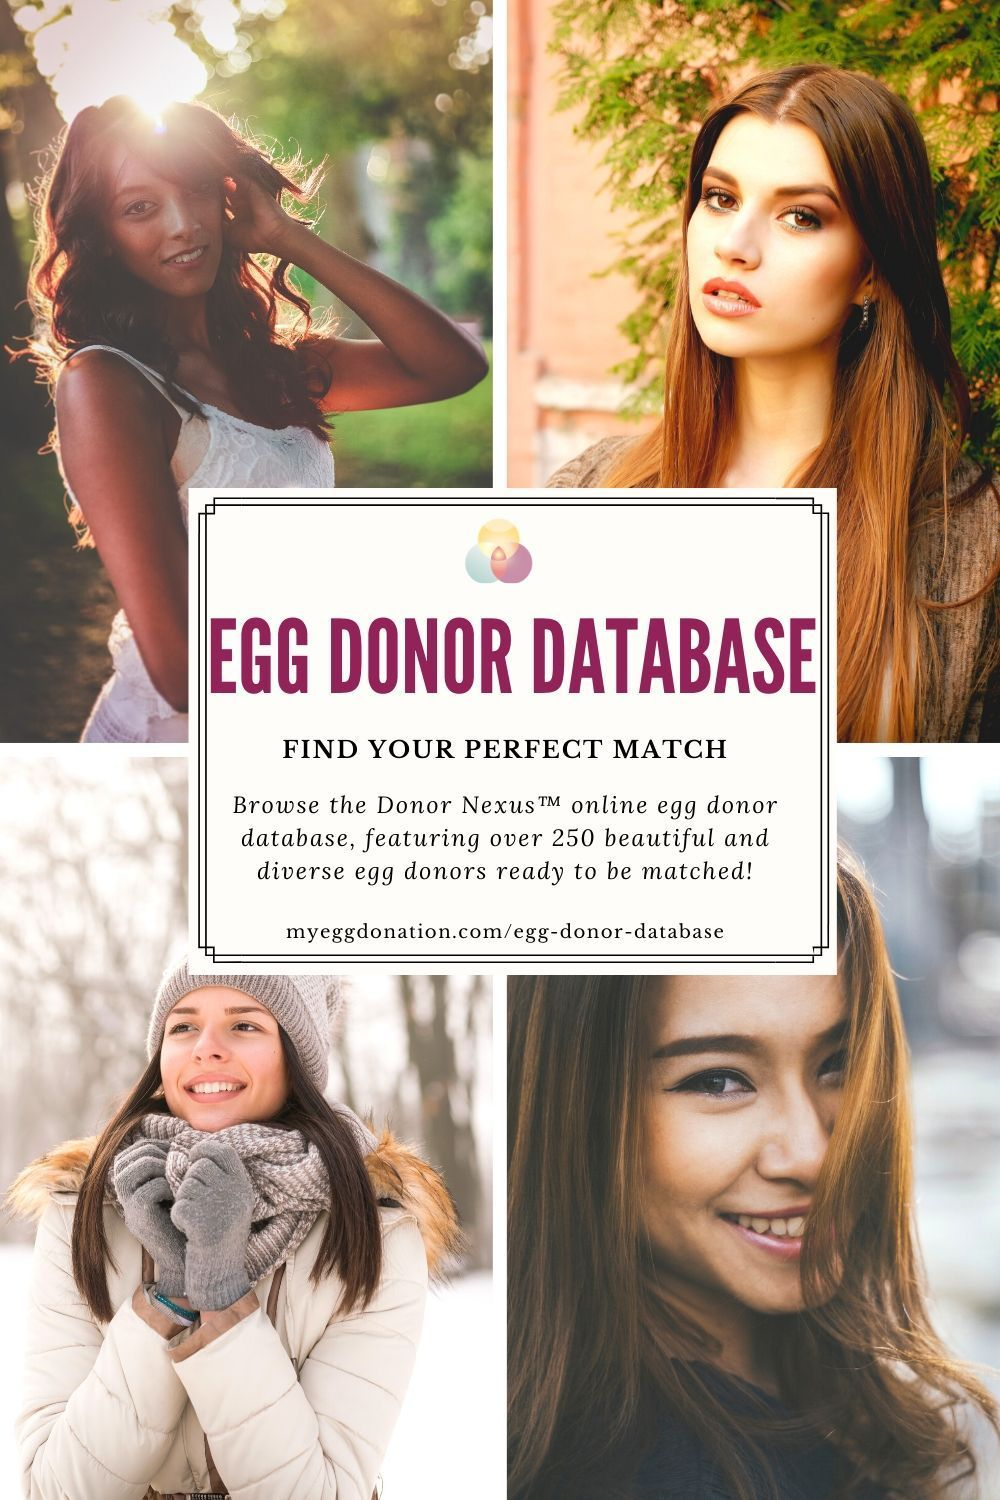 Egg Donor Database • Find an Egg Donor Donor Nexus™ in